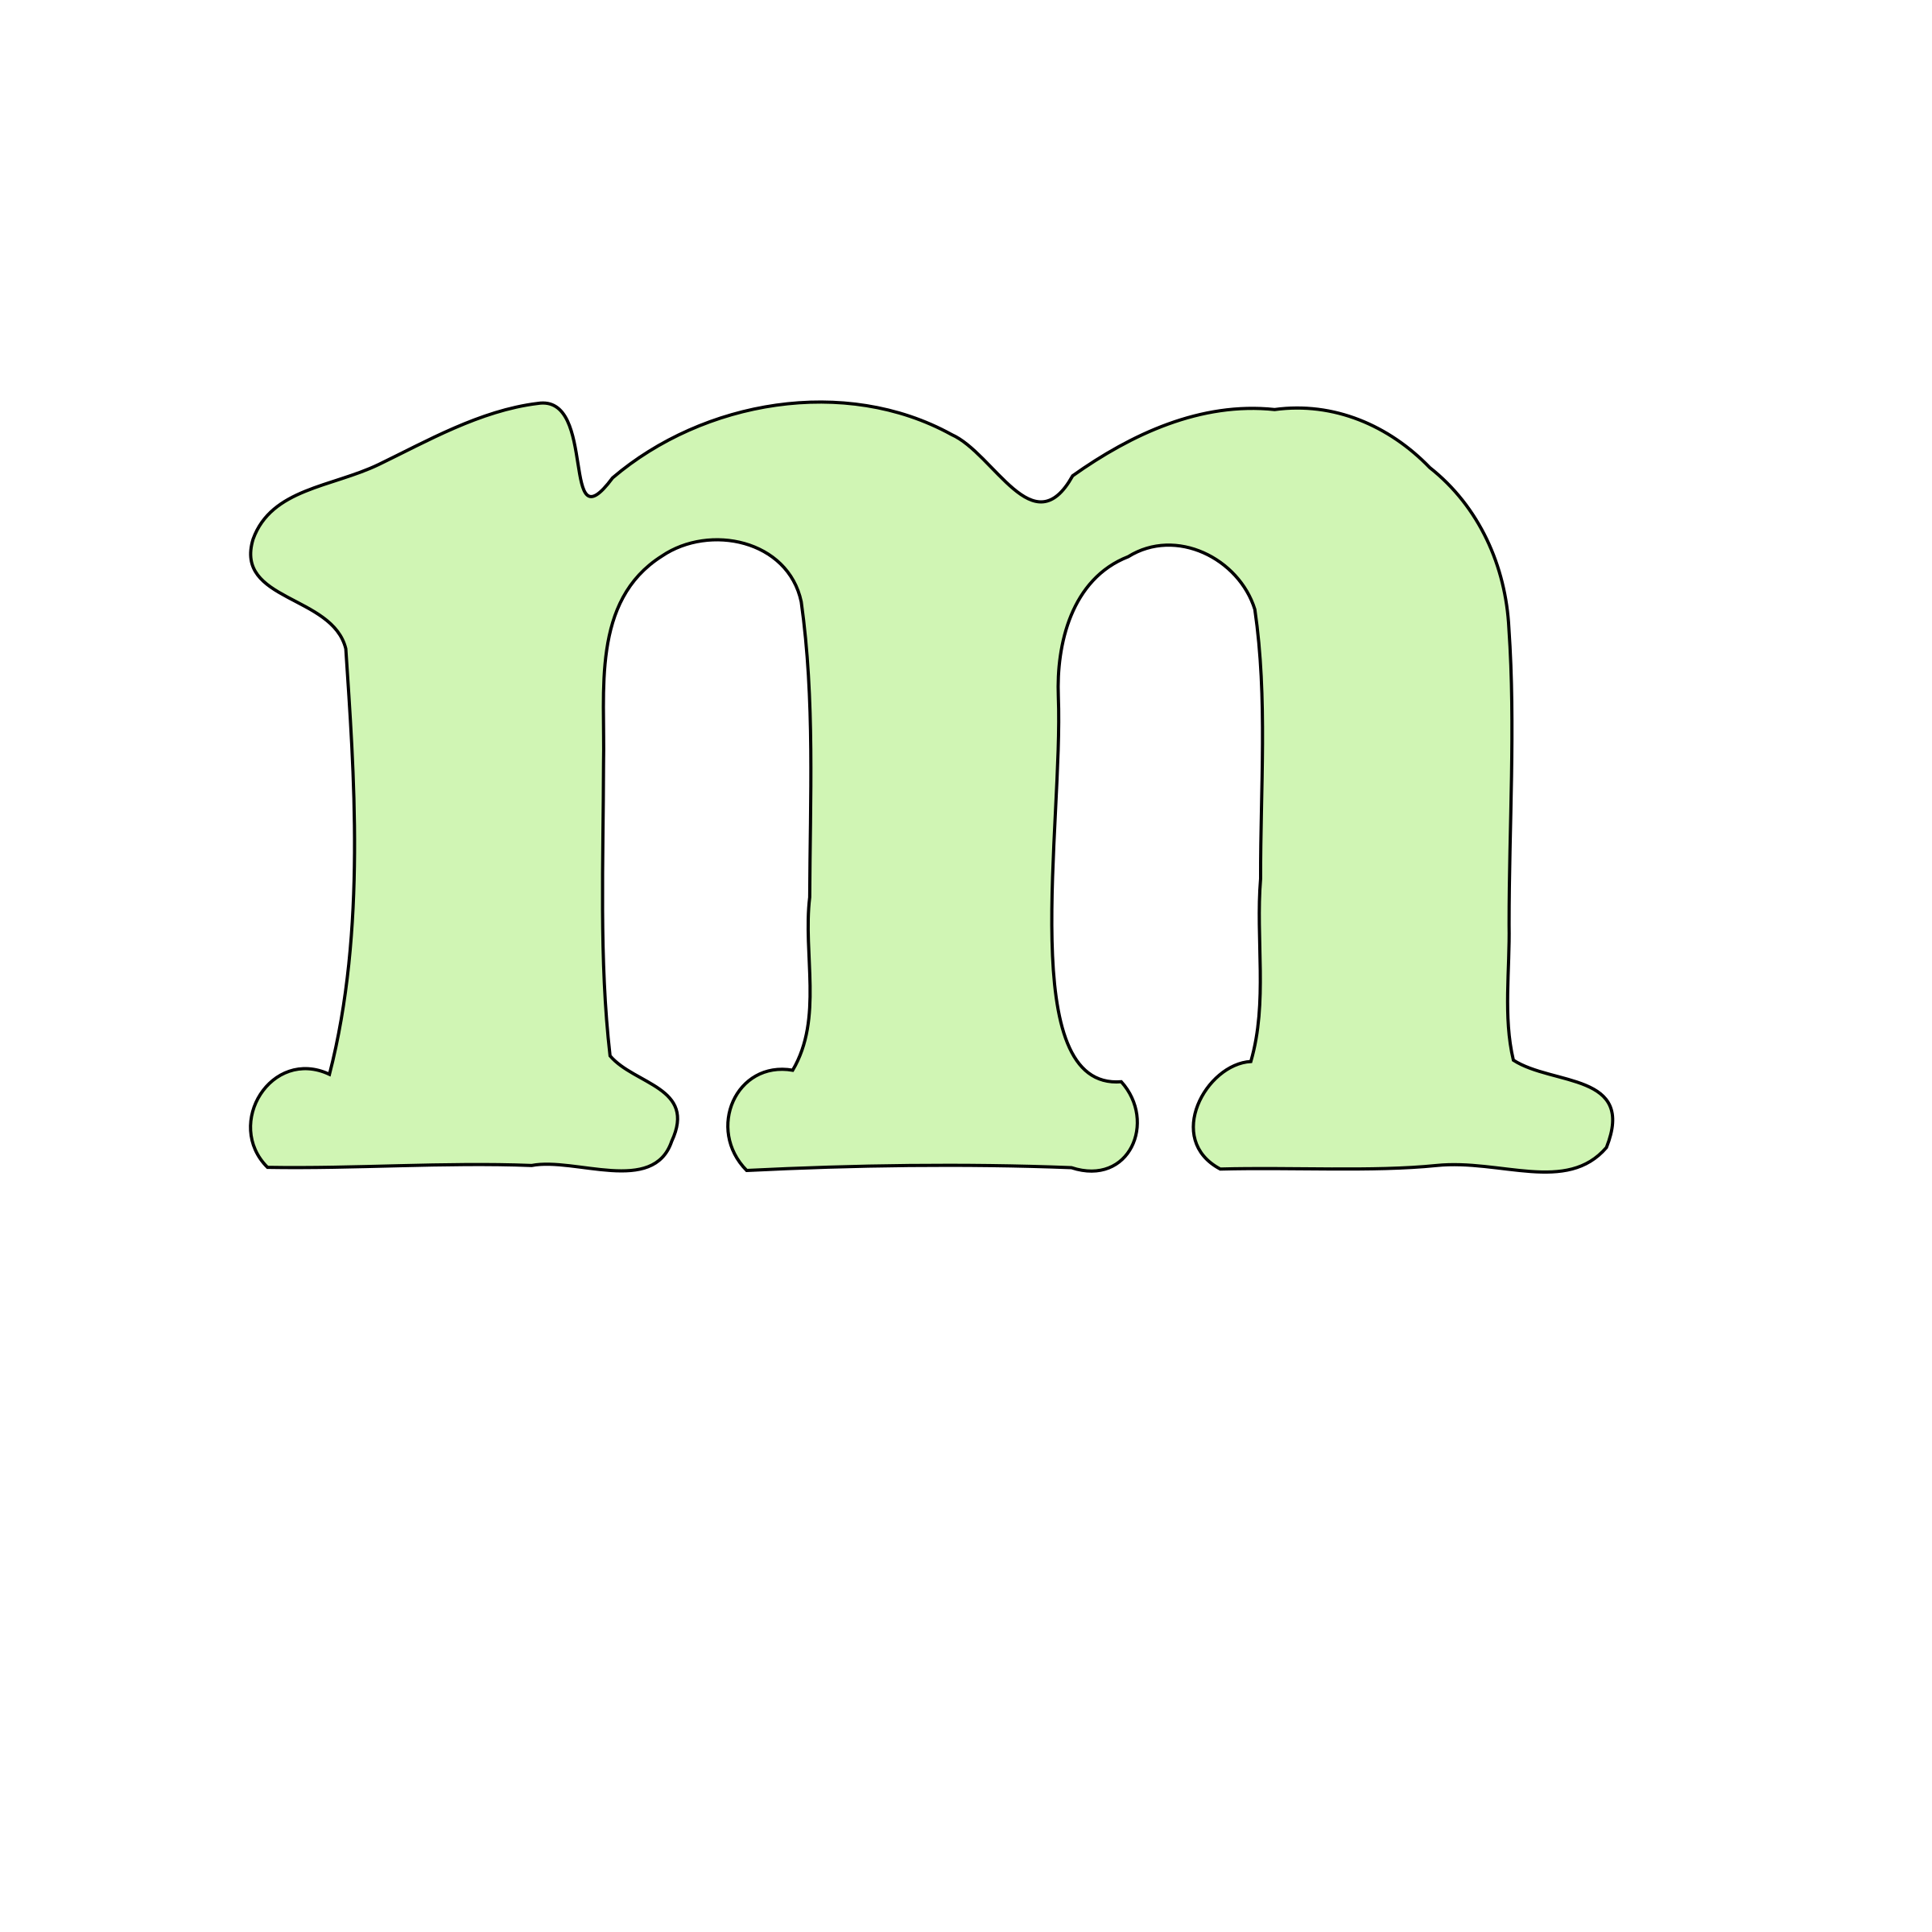 lowercase m by tuamora